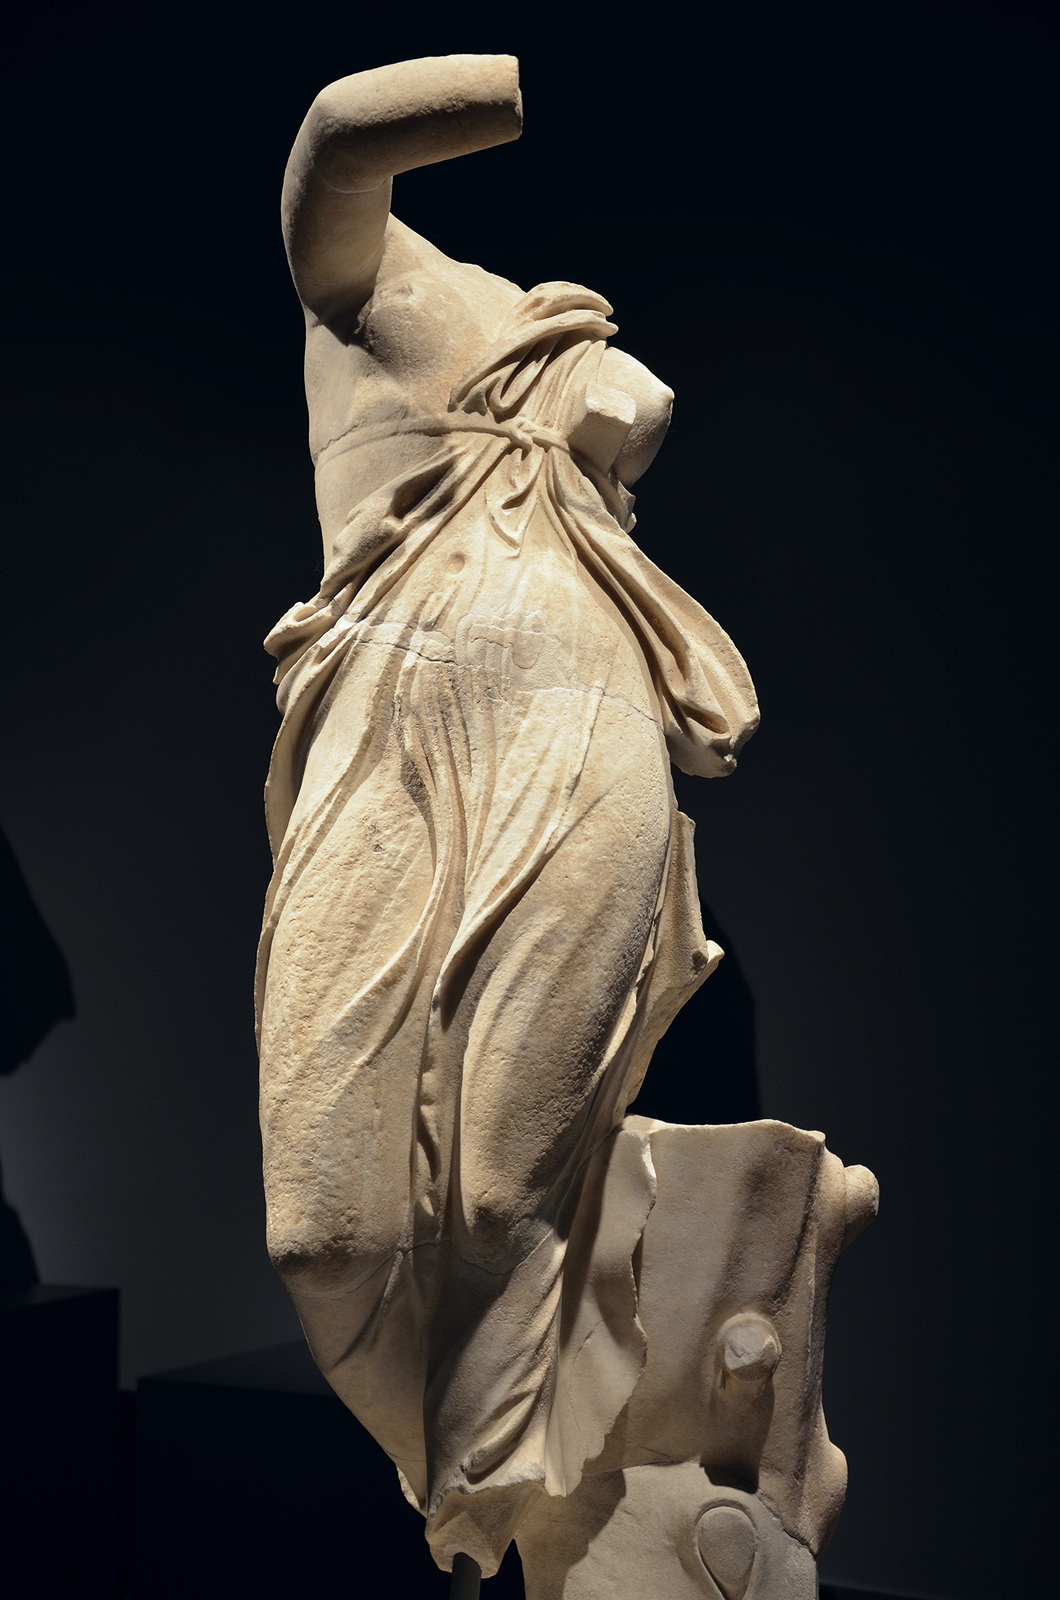 Art and sculptures from Hadrian's Villa: Marble statue of a dancing female figure